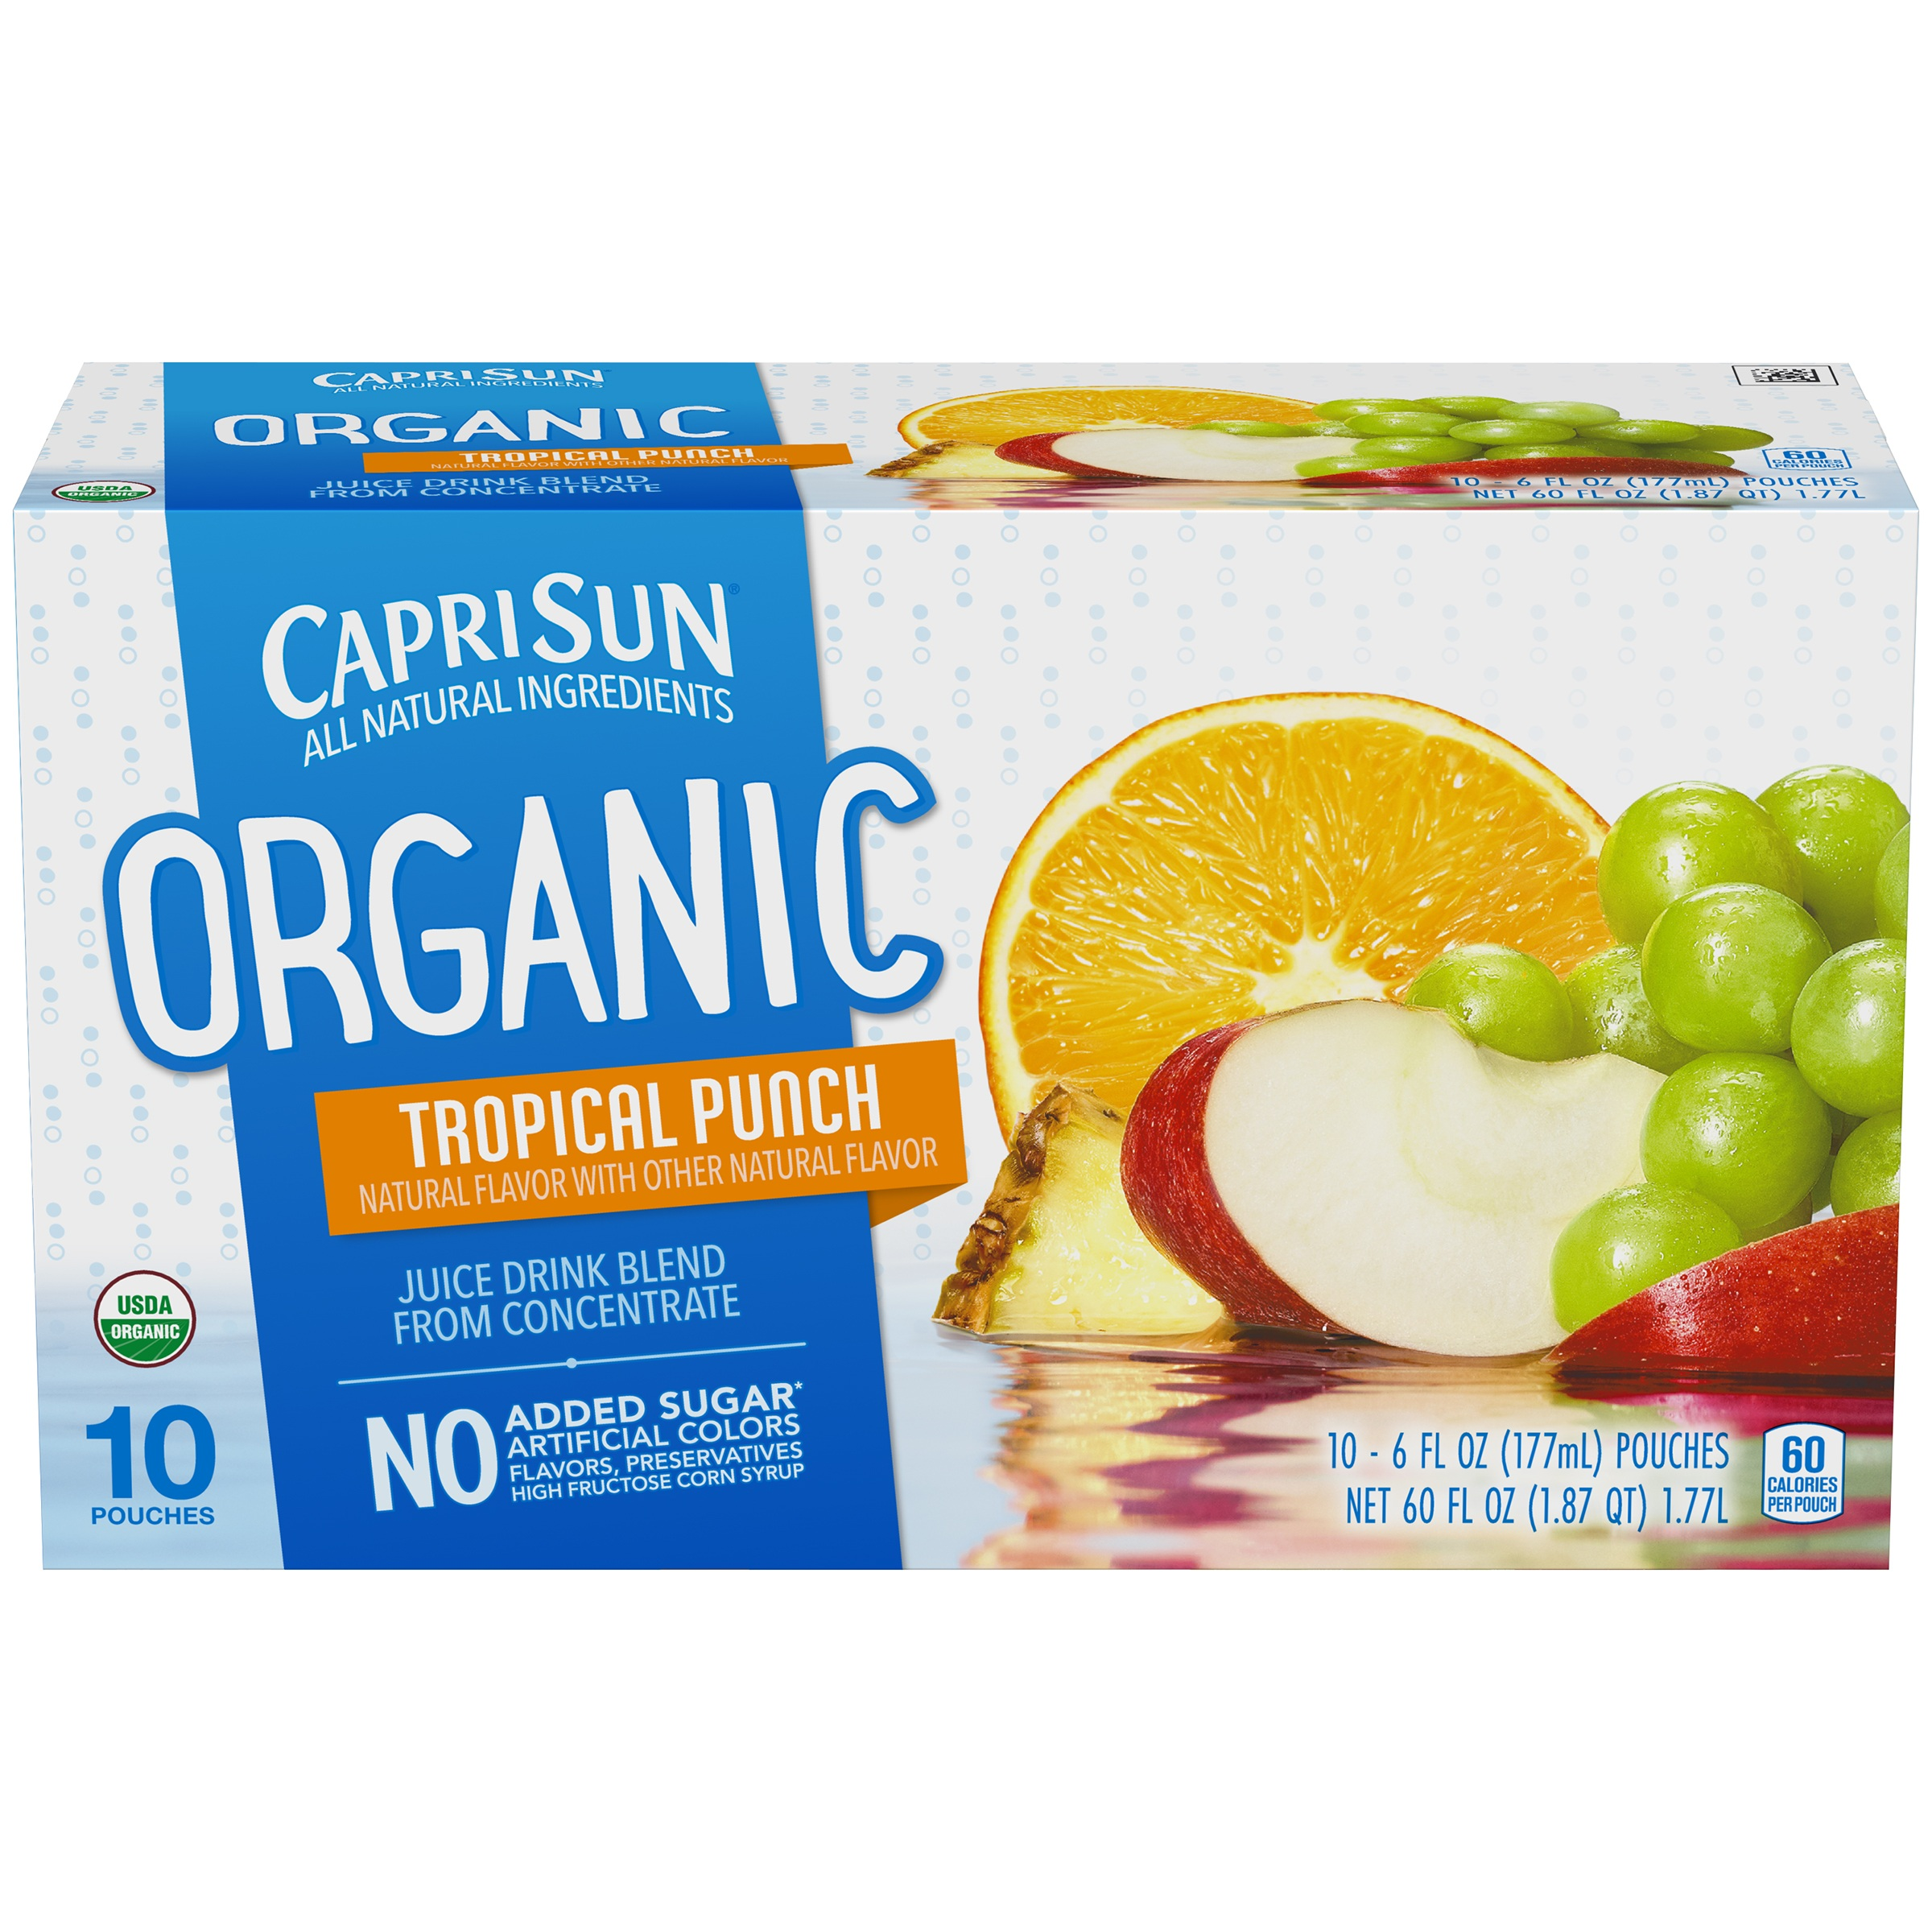 (4 Pack) Capri Sun Organic Tropical Punch Ready-to-Drink Soft Drink, 10 - 6 fl oz Pouches